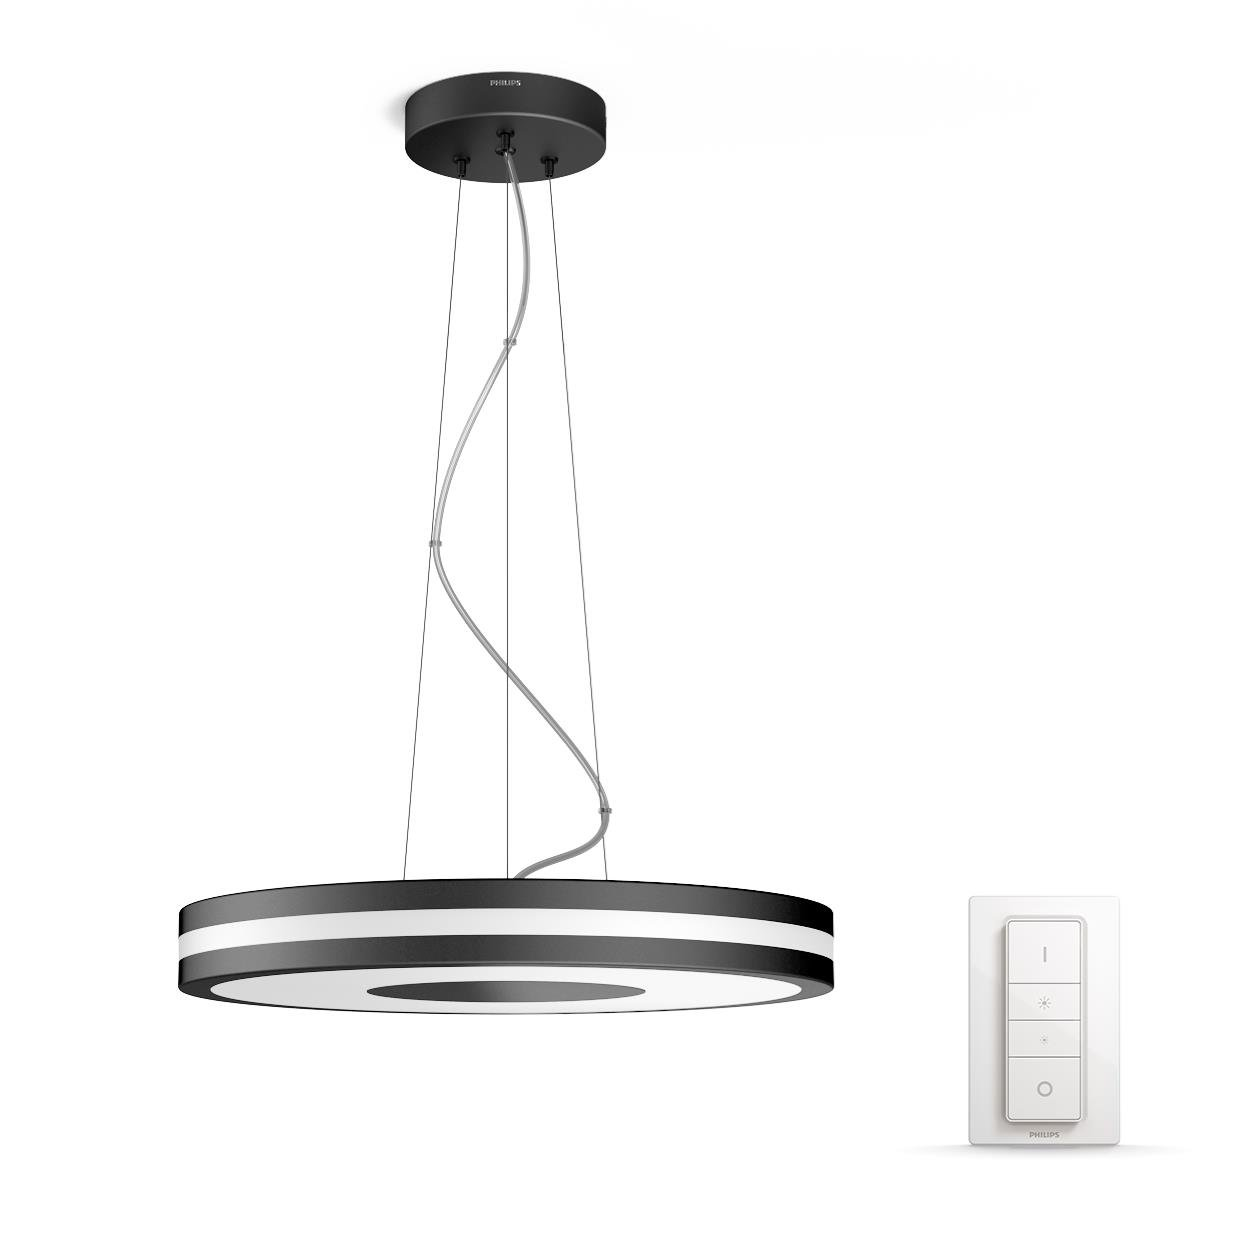 Philips Hue - Being  Pendant Lamp Black (Dimmer Included) - White Ambiance - E